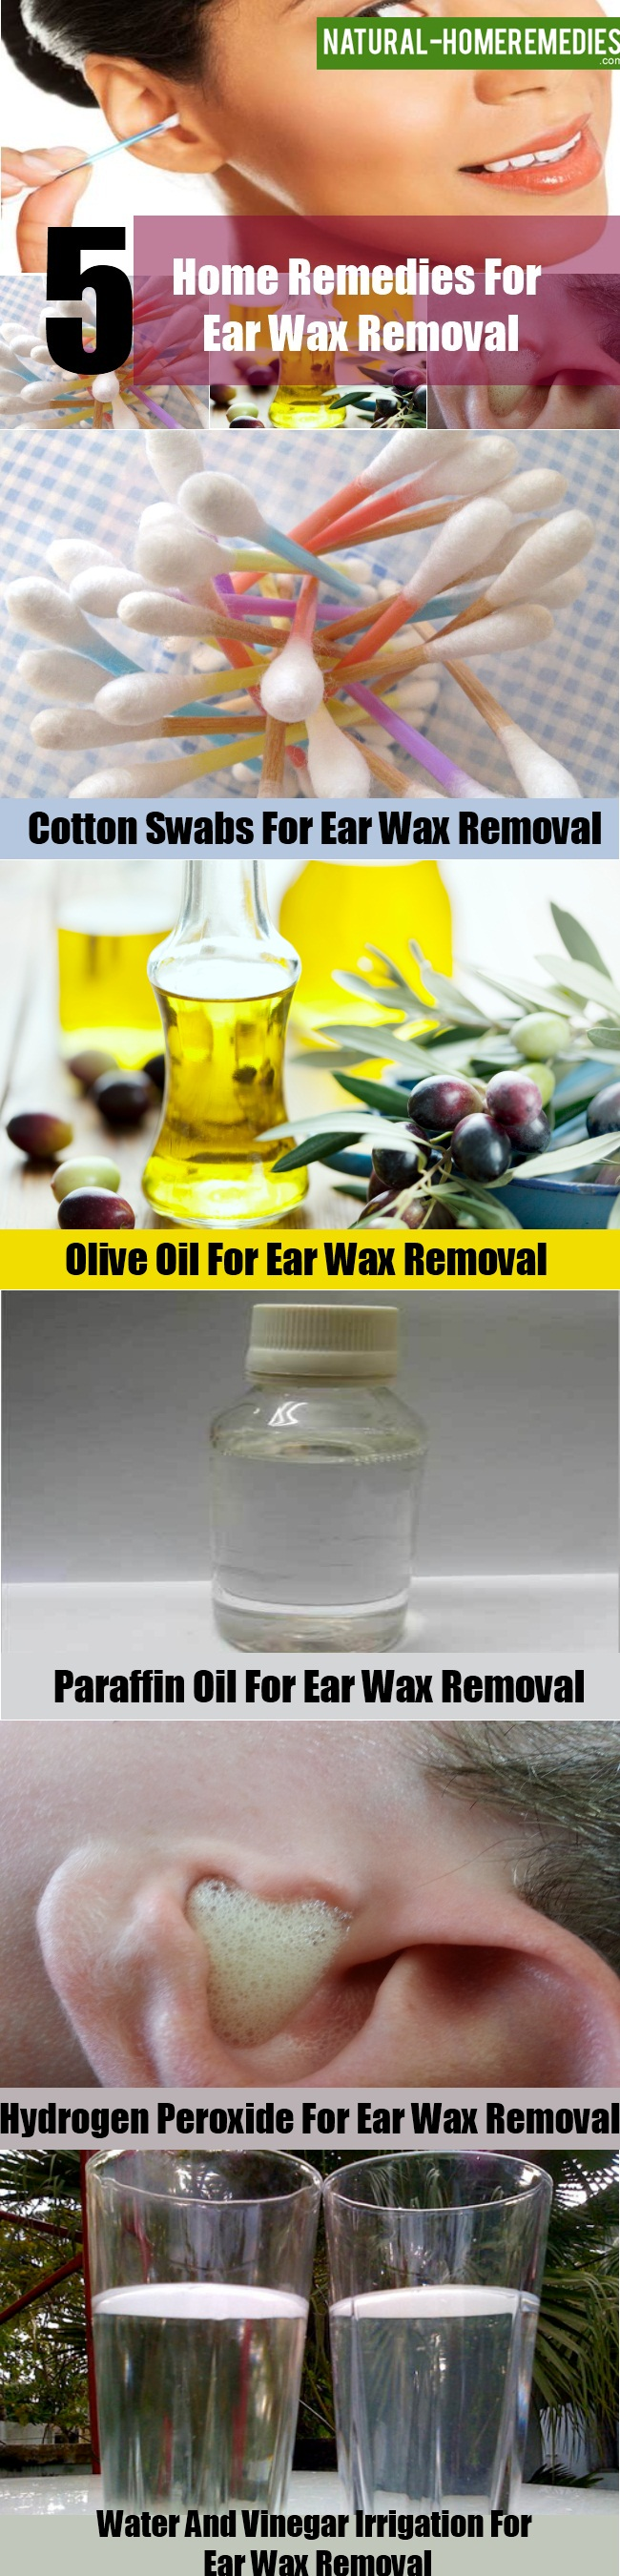 5 home remedies for ear wax removal how to remove ear wax remedies for ear wax removal solutioingenieria Image collections